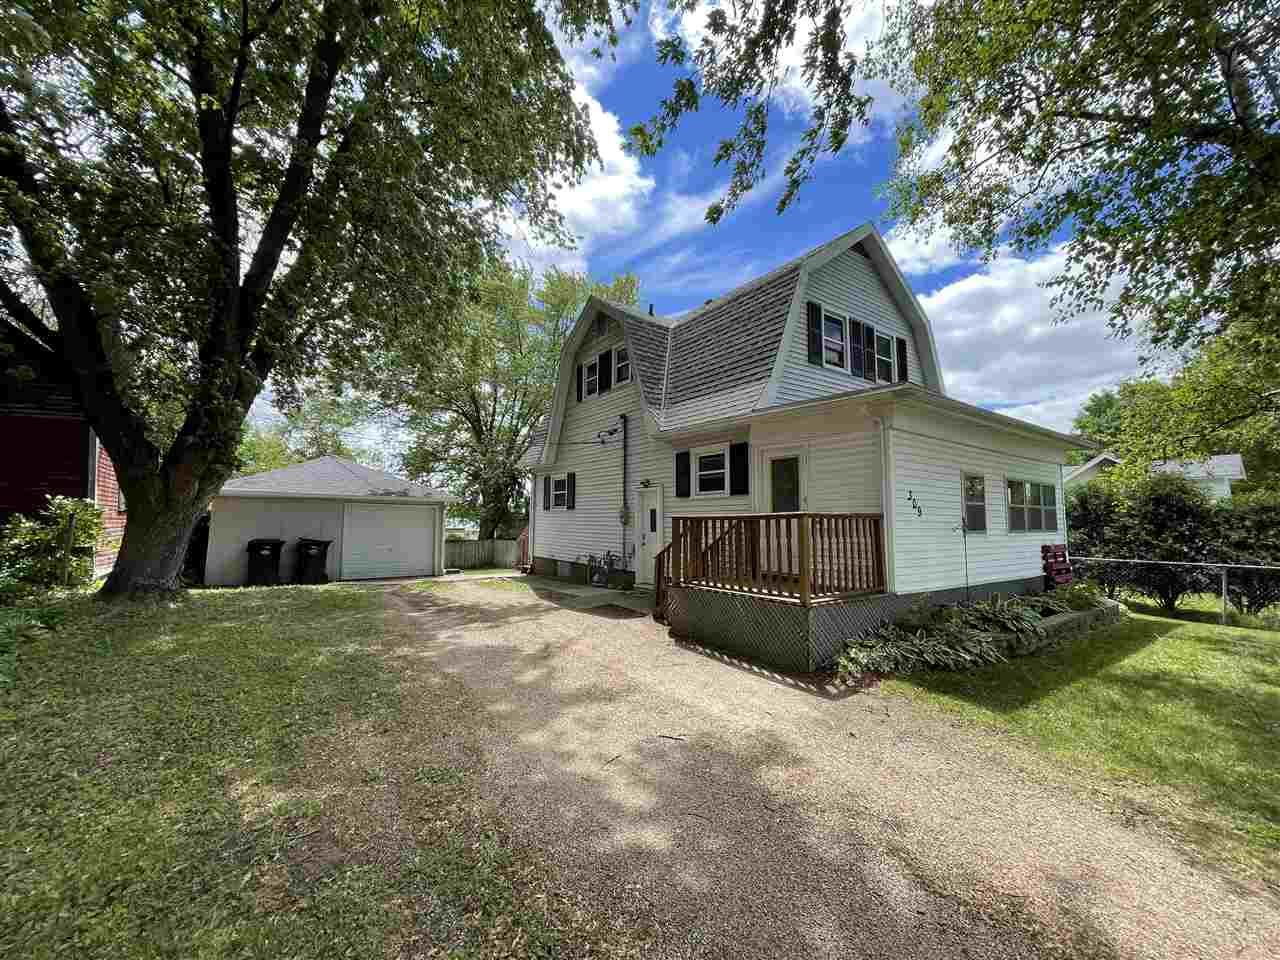 309 Columbia Ave, De Forest, WI 53532 - #: 1912590